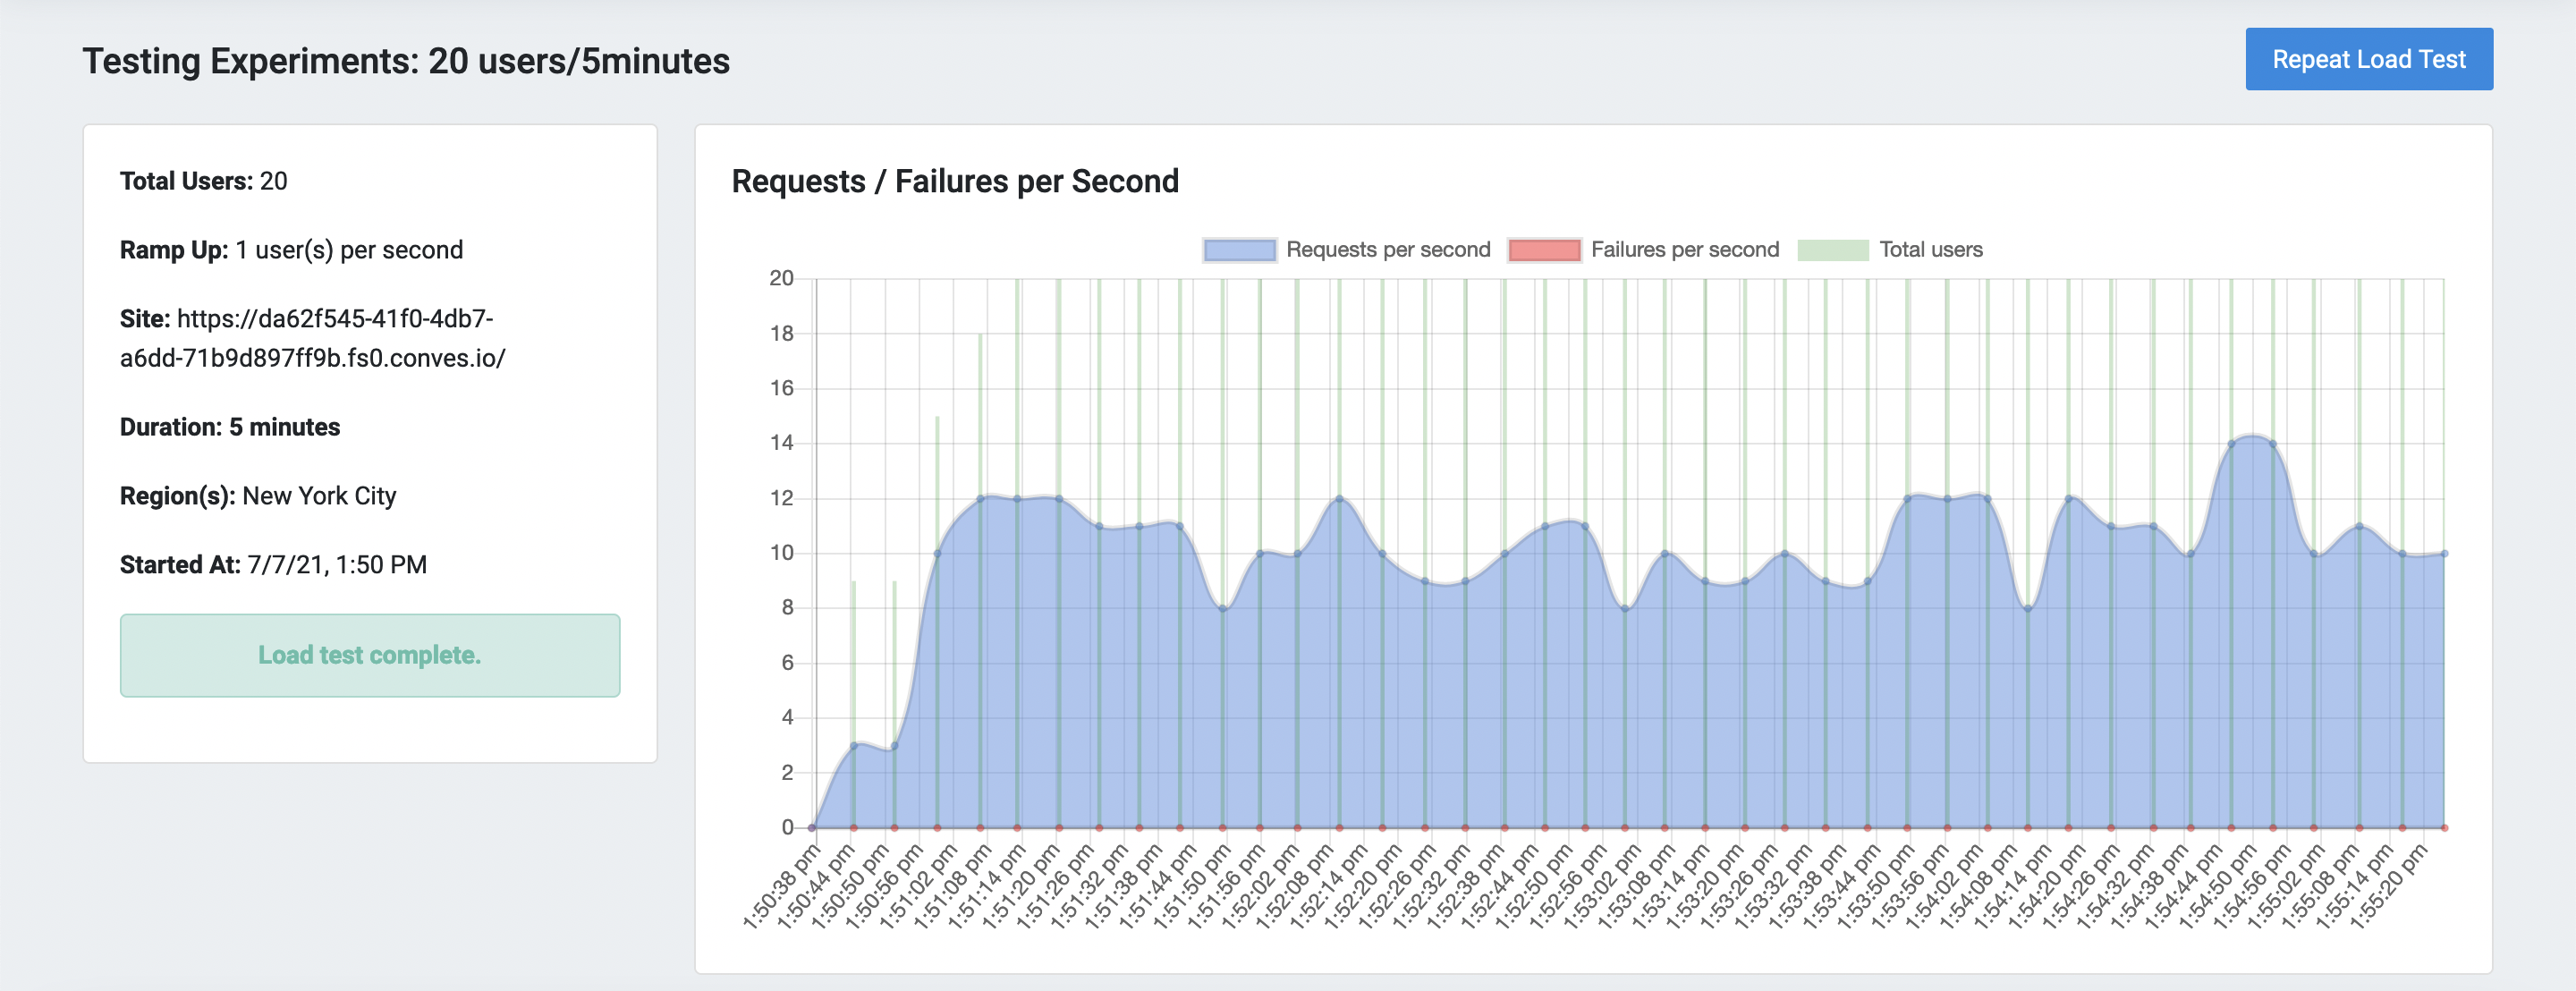 Screenshot showing requests and failures per second